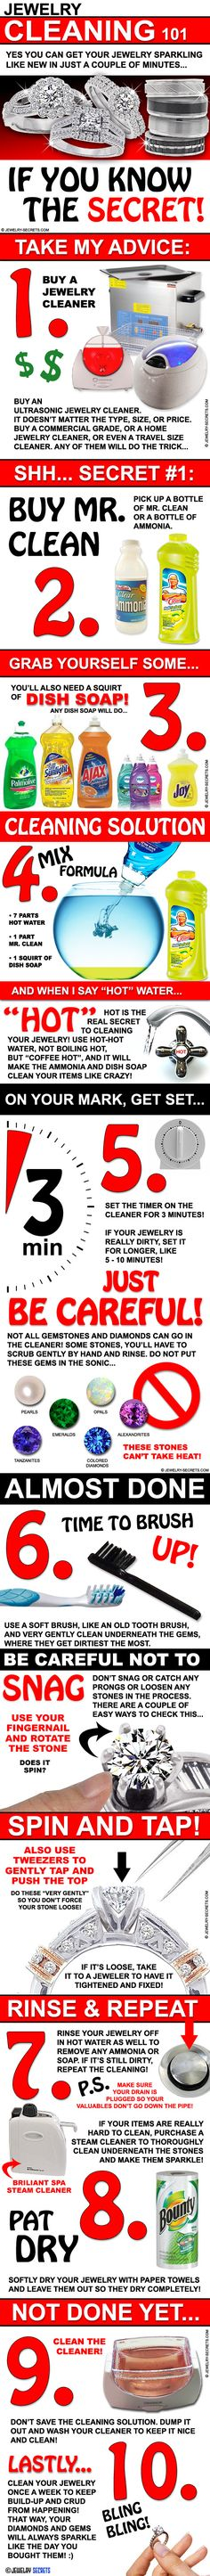 ► ► Jewelry Cleaning Secrets 101!